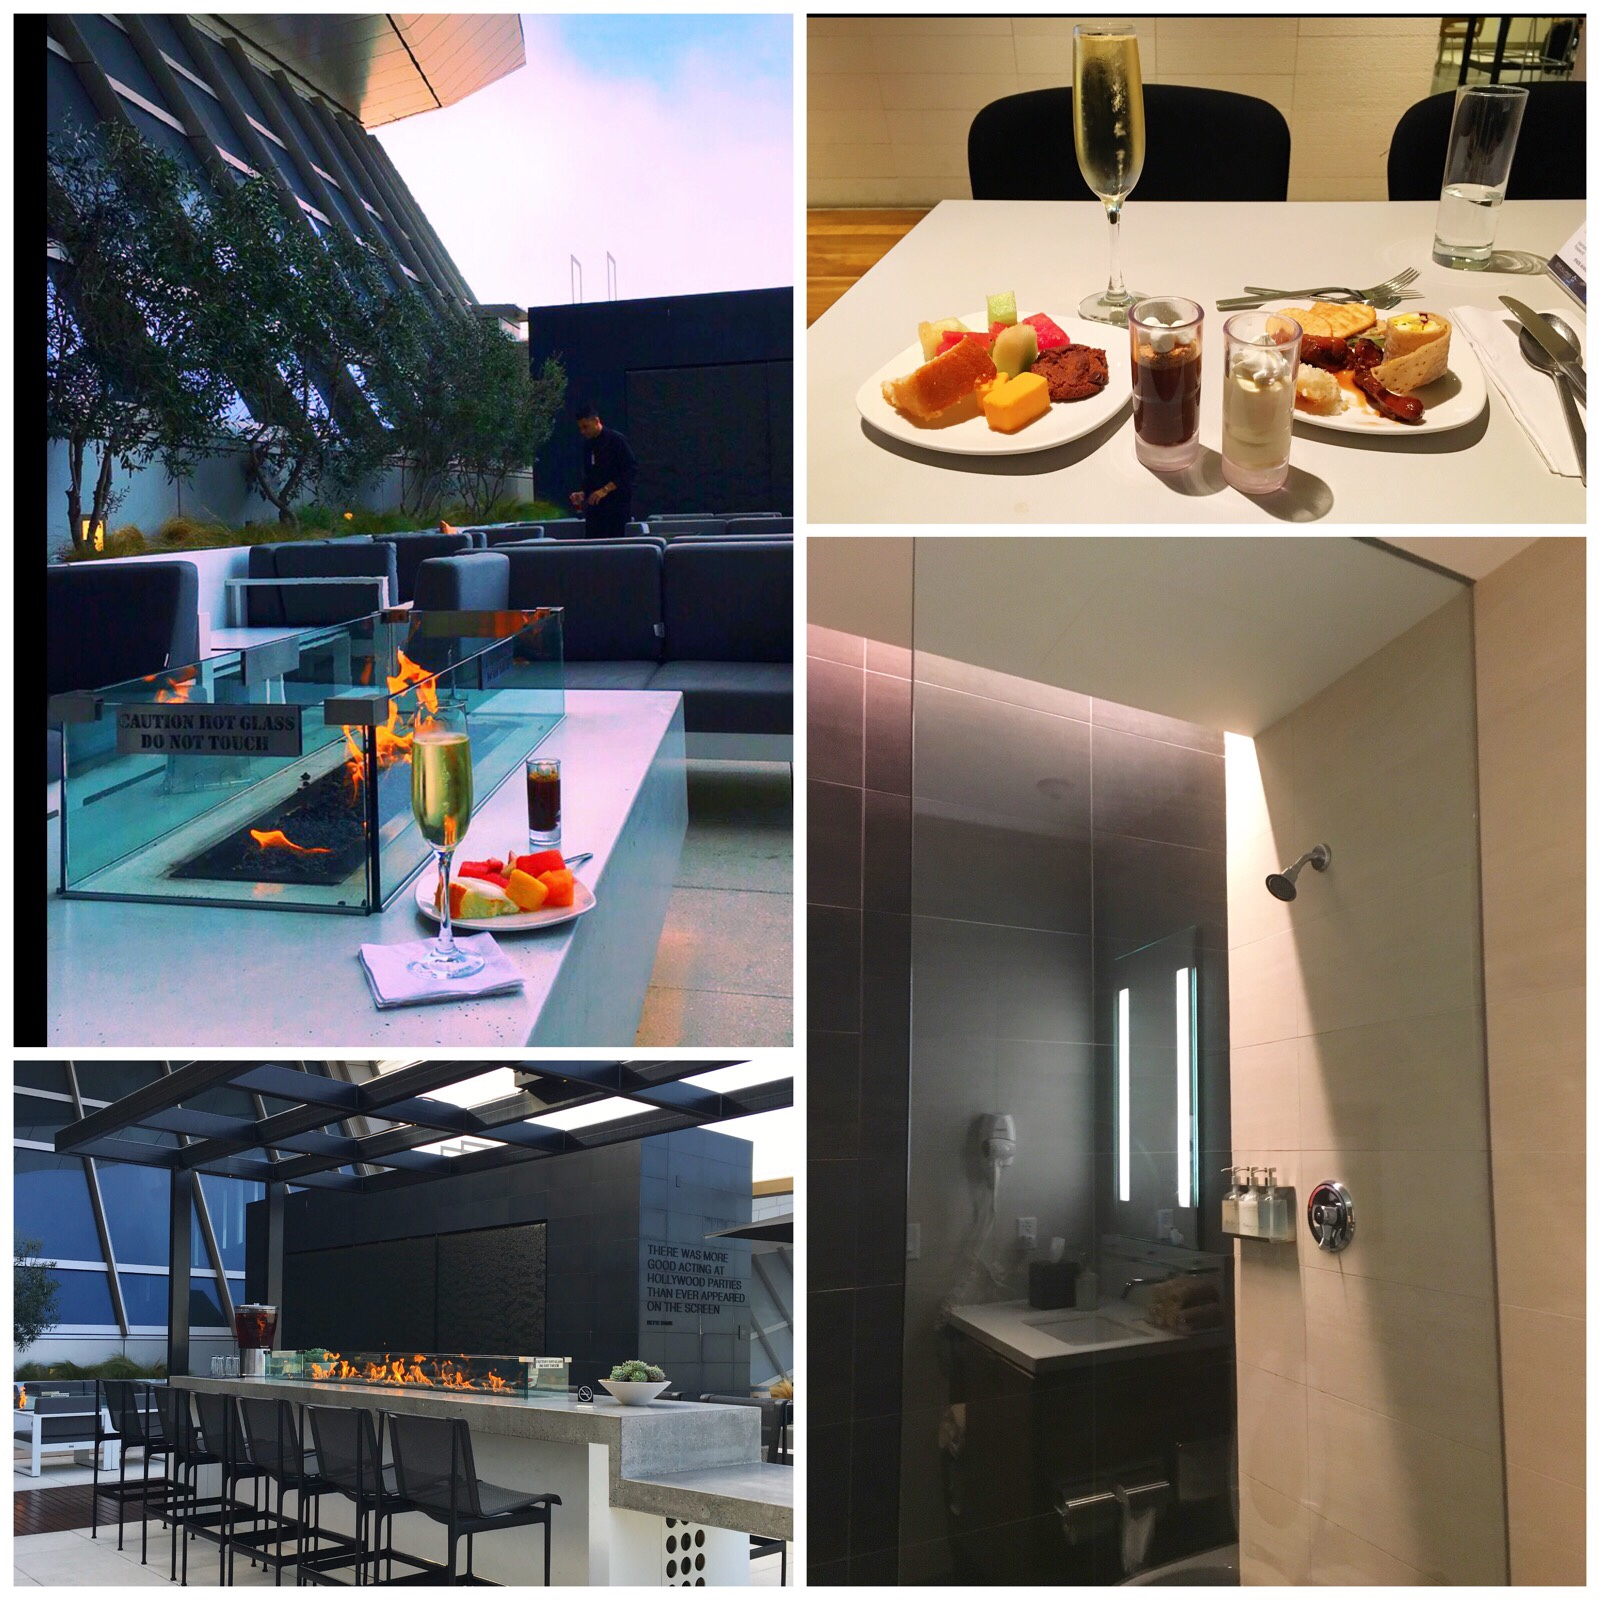 LAX Star Alliance Lounge: One of my favorite lounges in the world with the incredible outdoor space and the attentive staff that made sure my champagne glass never went empty. I also like the option to shower especially when long international flights are involved